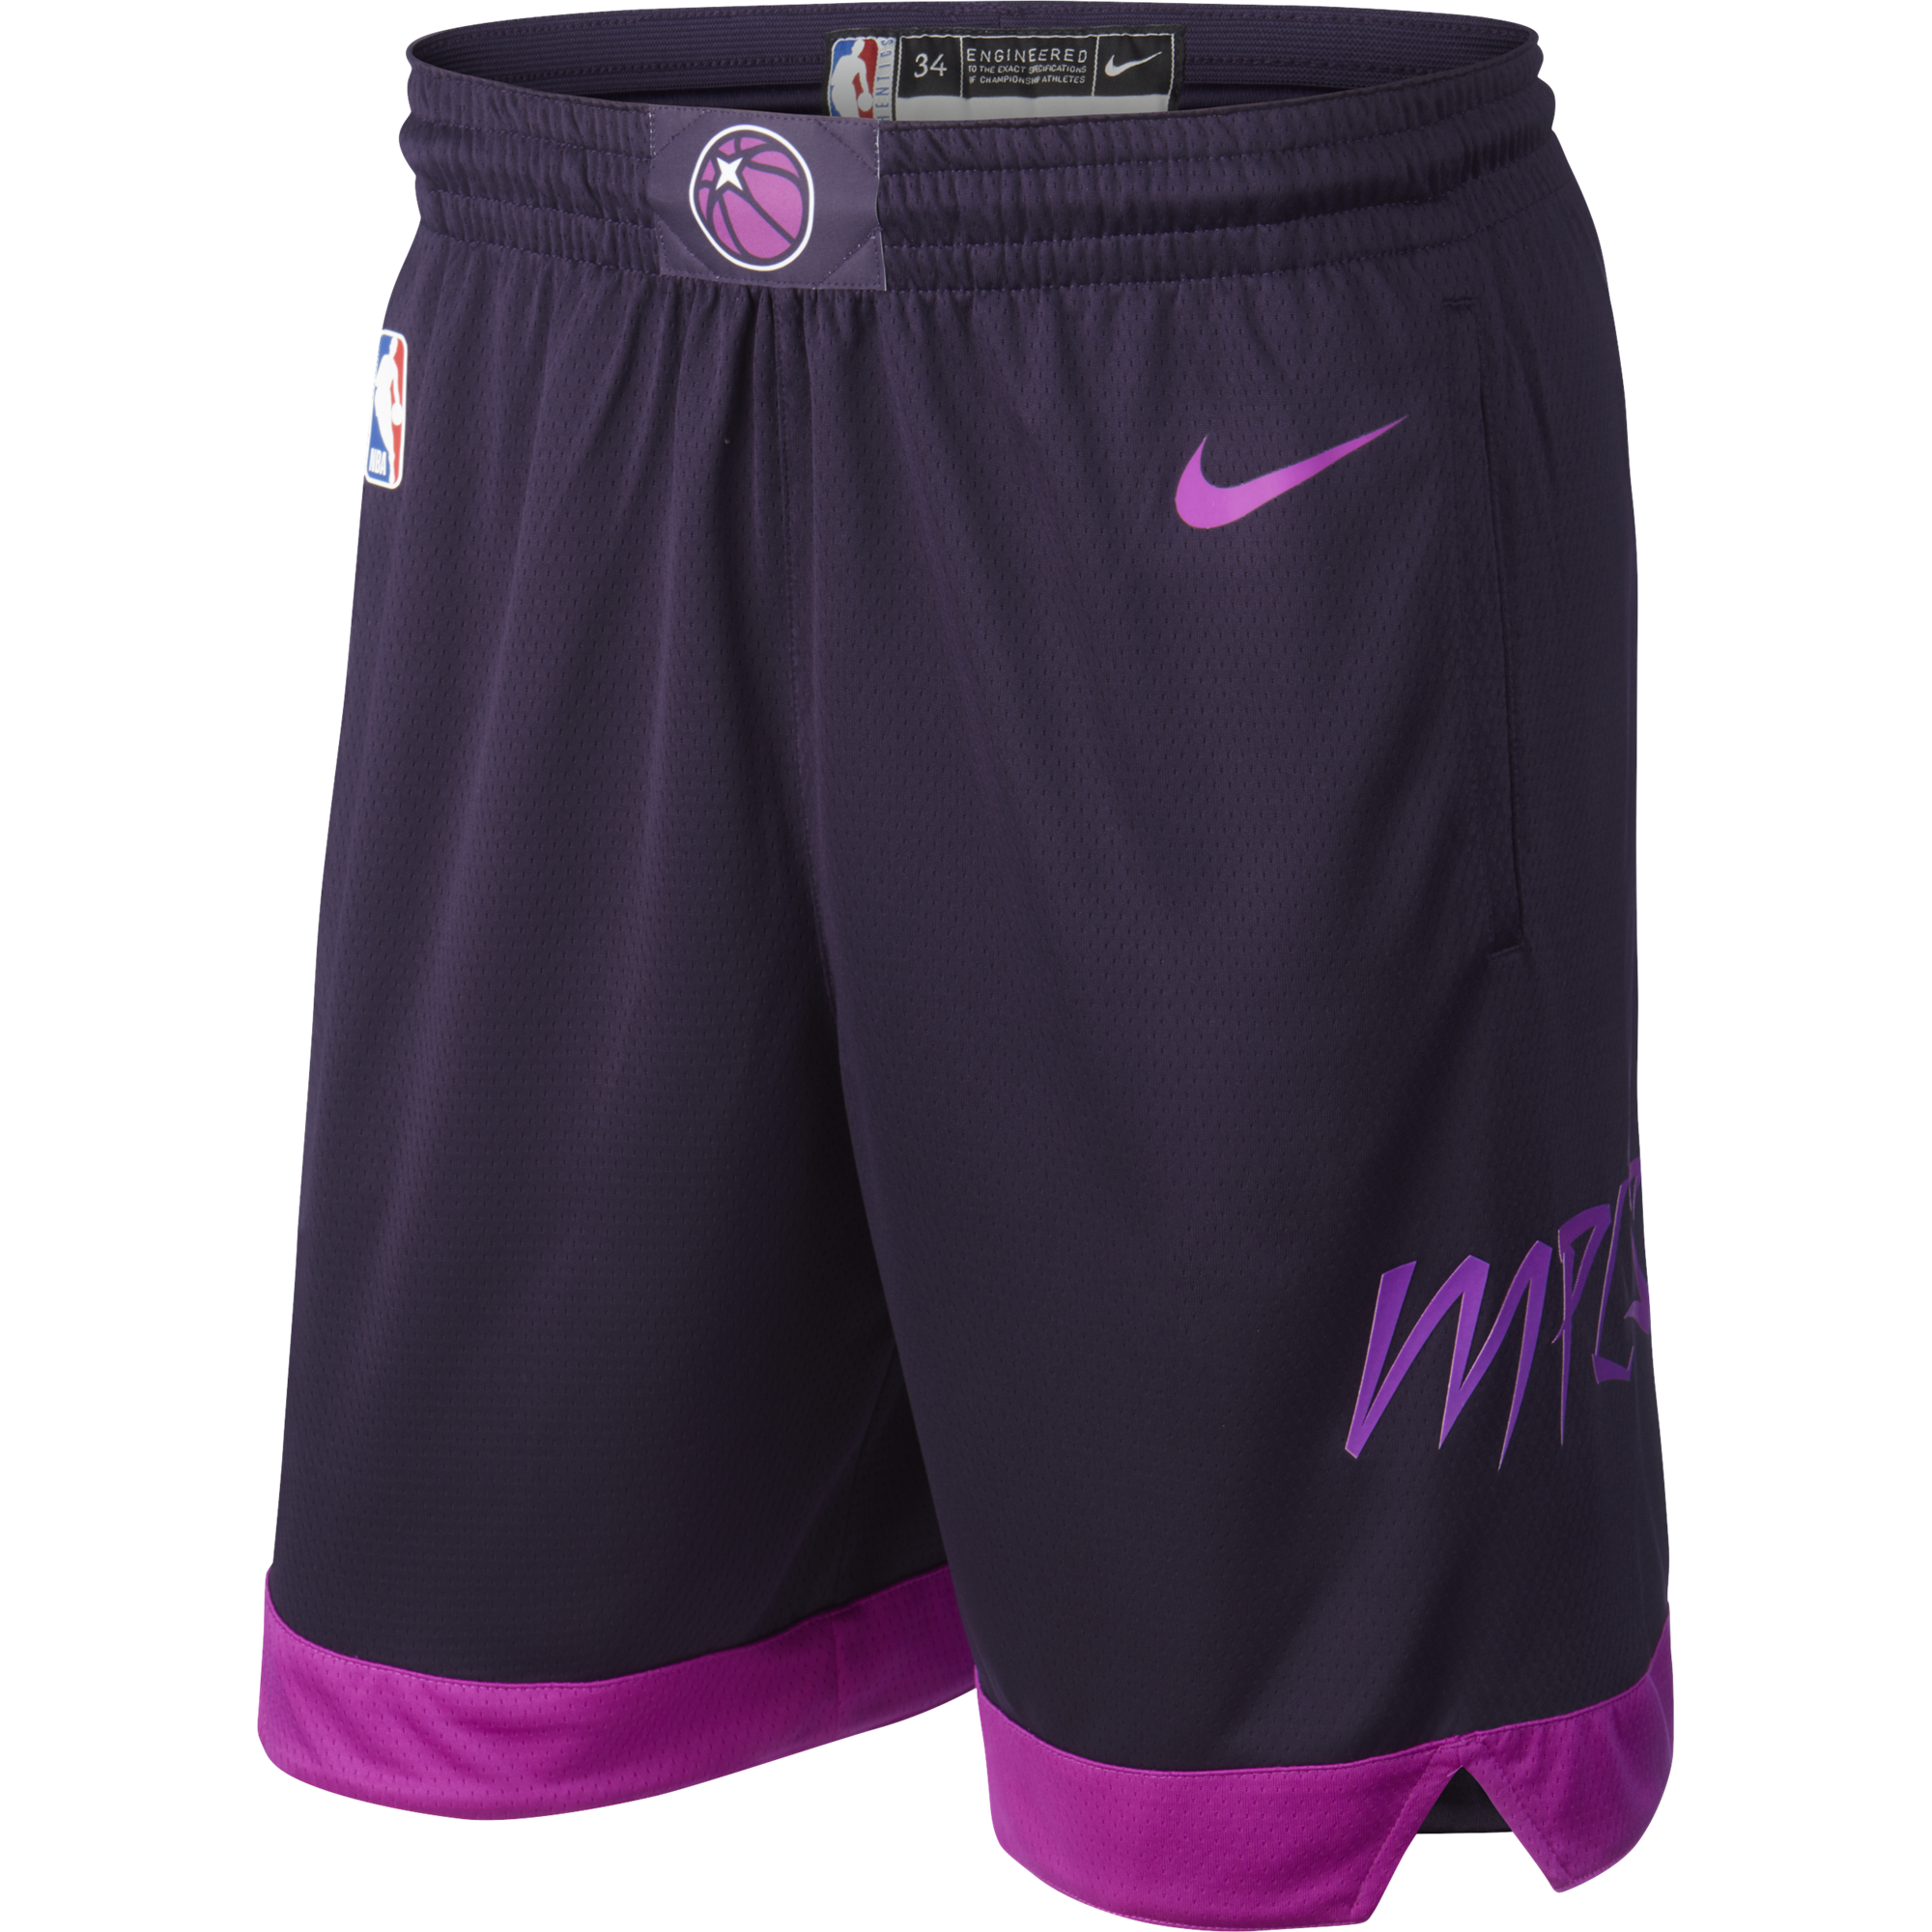 Nike Nba Minnesota Timberwolves Swingman Shorts For 55 00